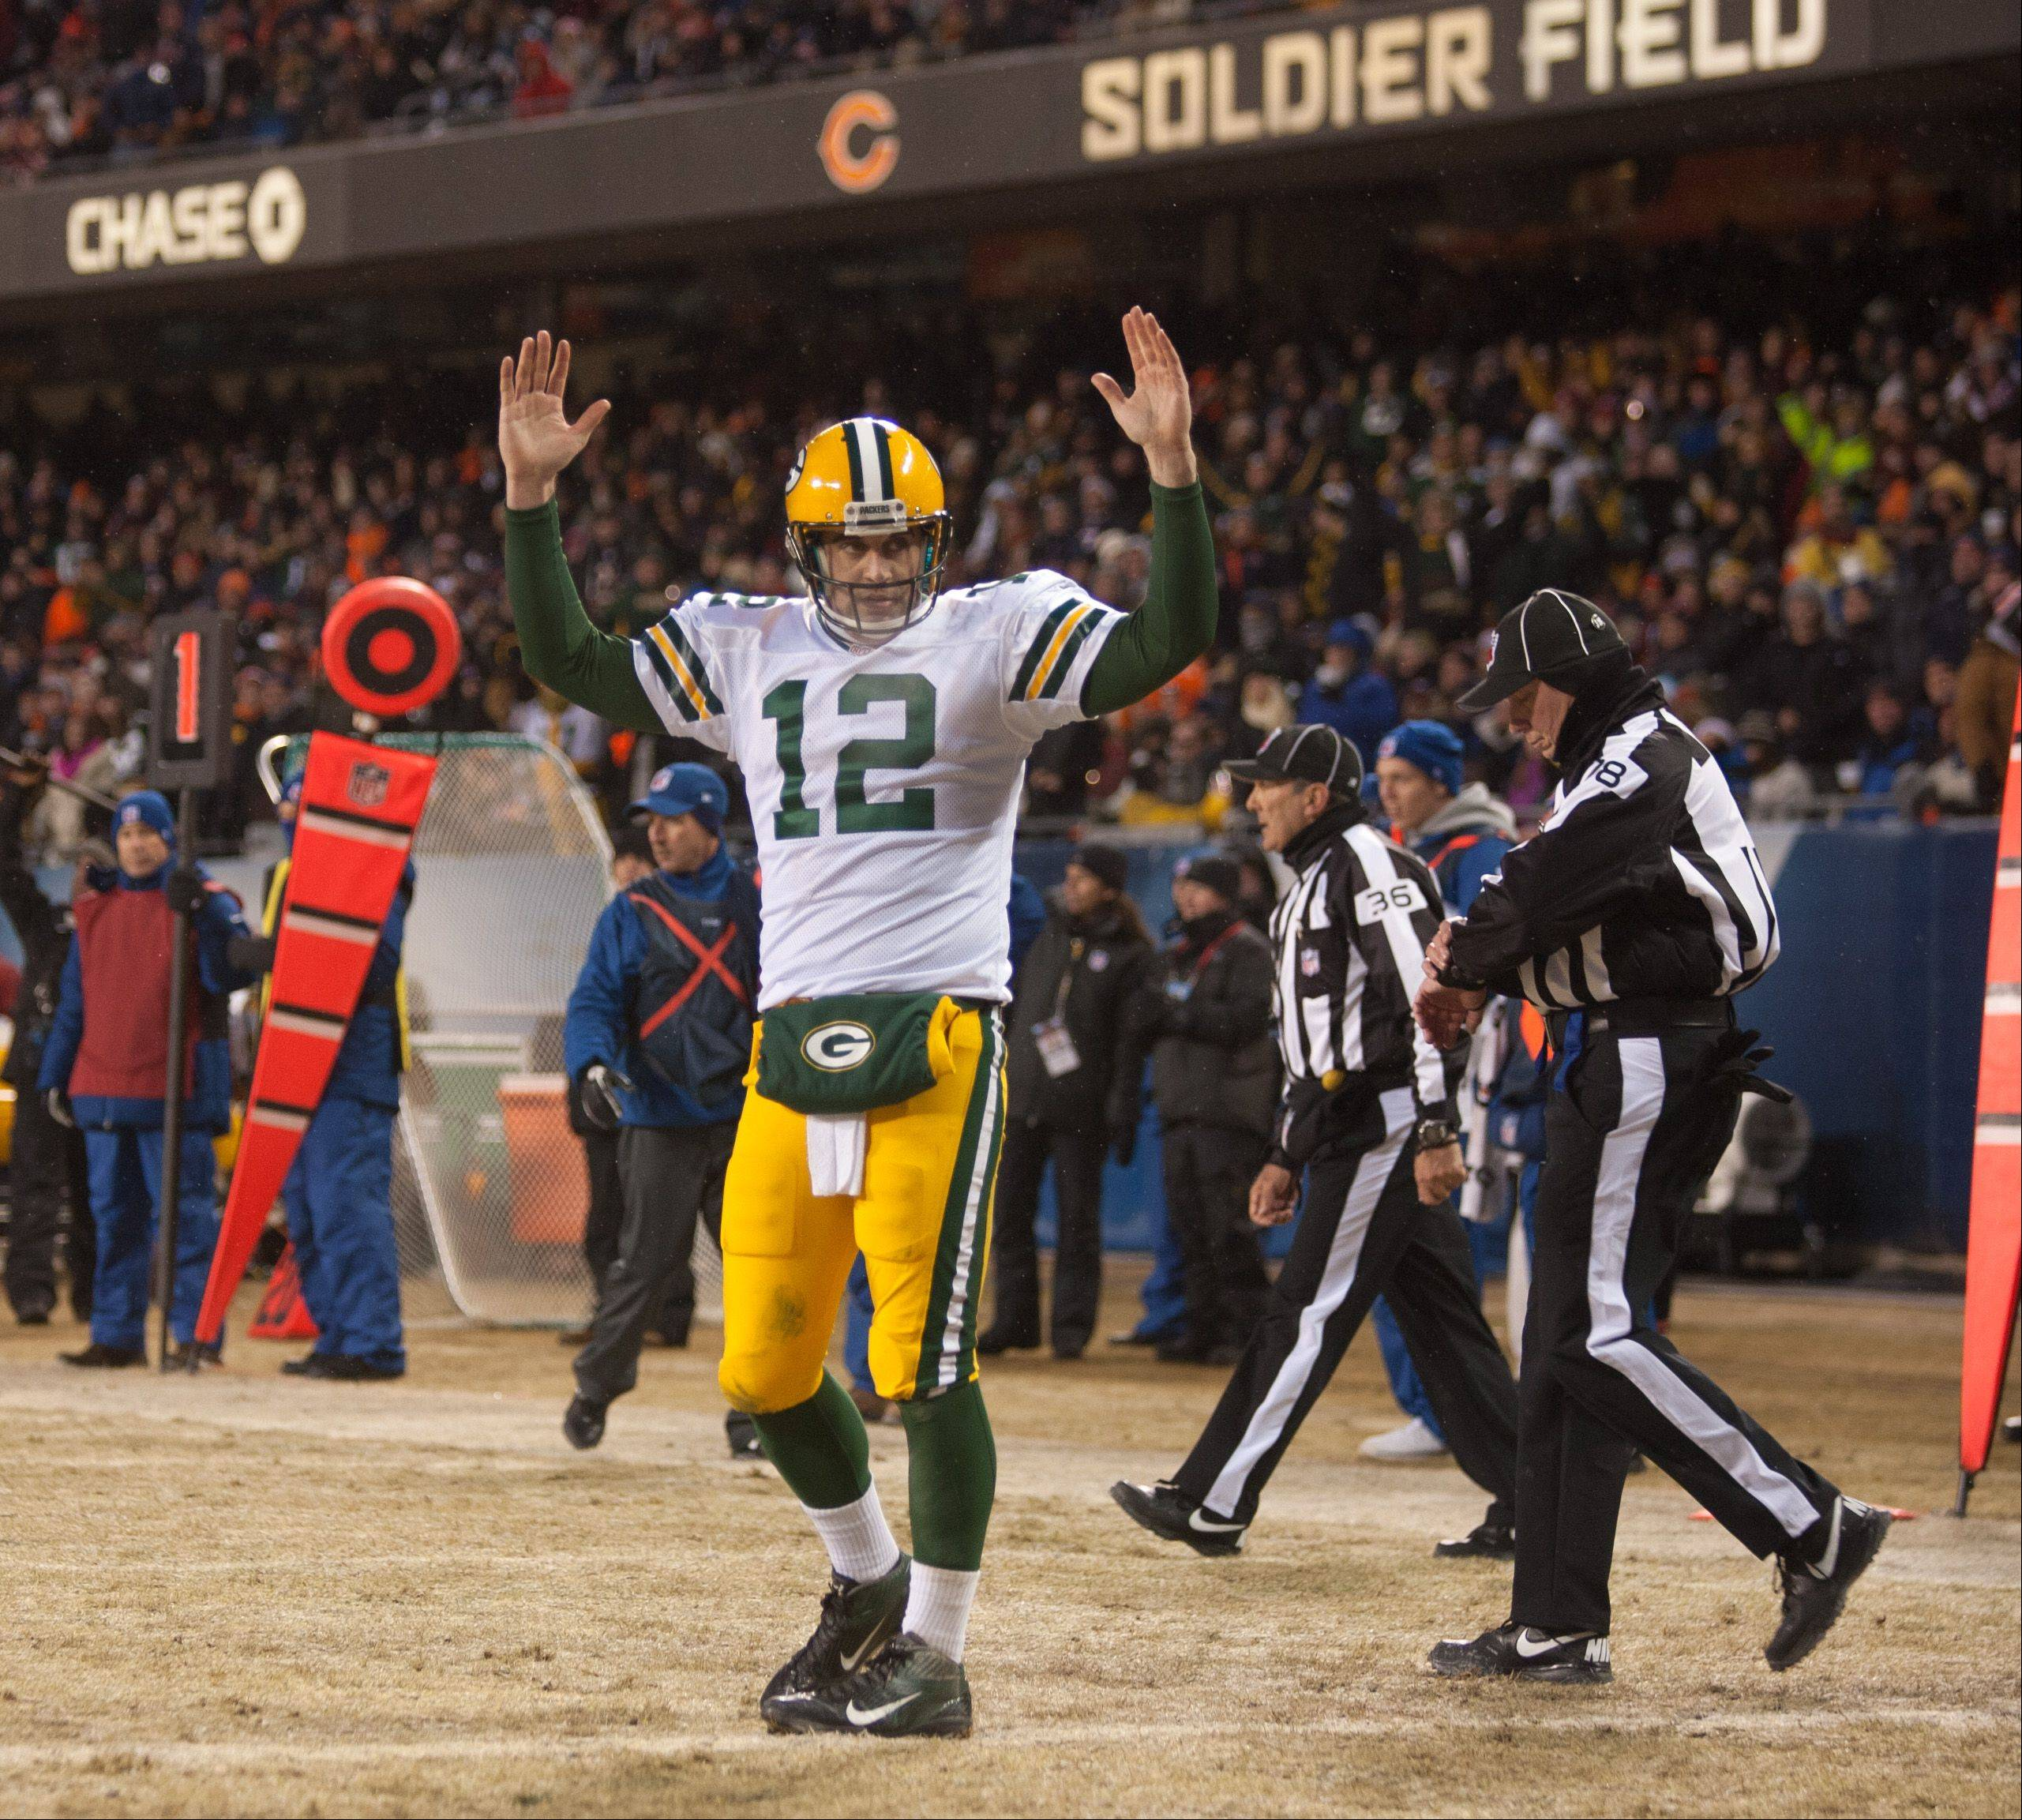 Aaron Rodgers signals a touchdown on his first-half fumble, which was run into the end zone by Packers WR Jarrett Boykin.